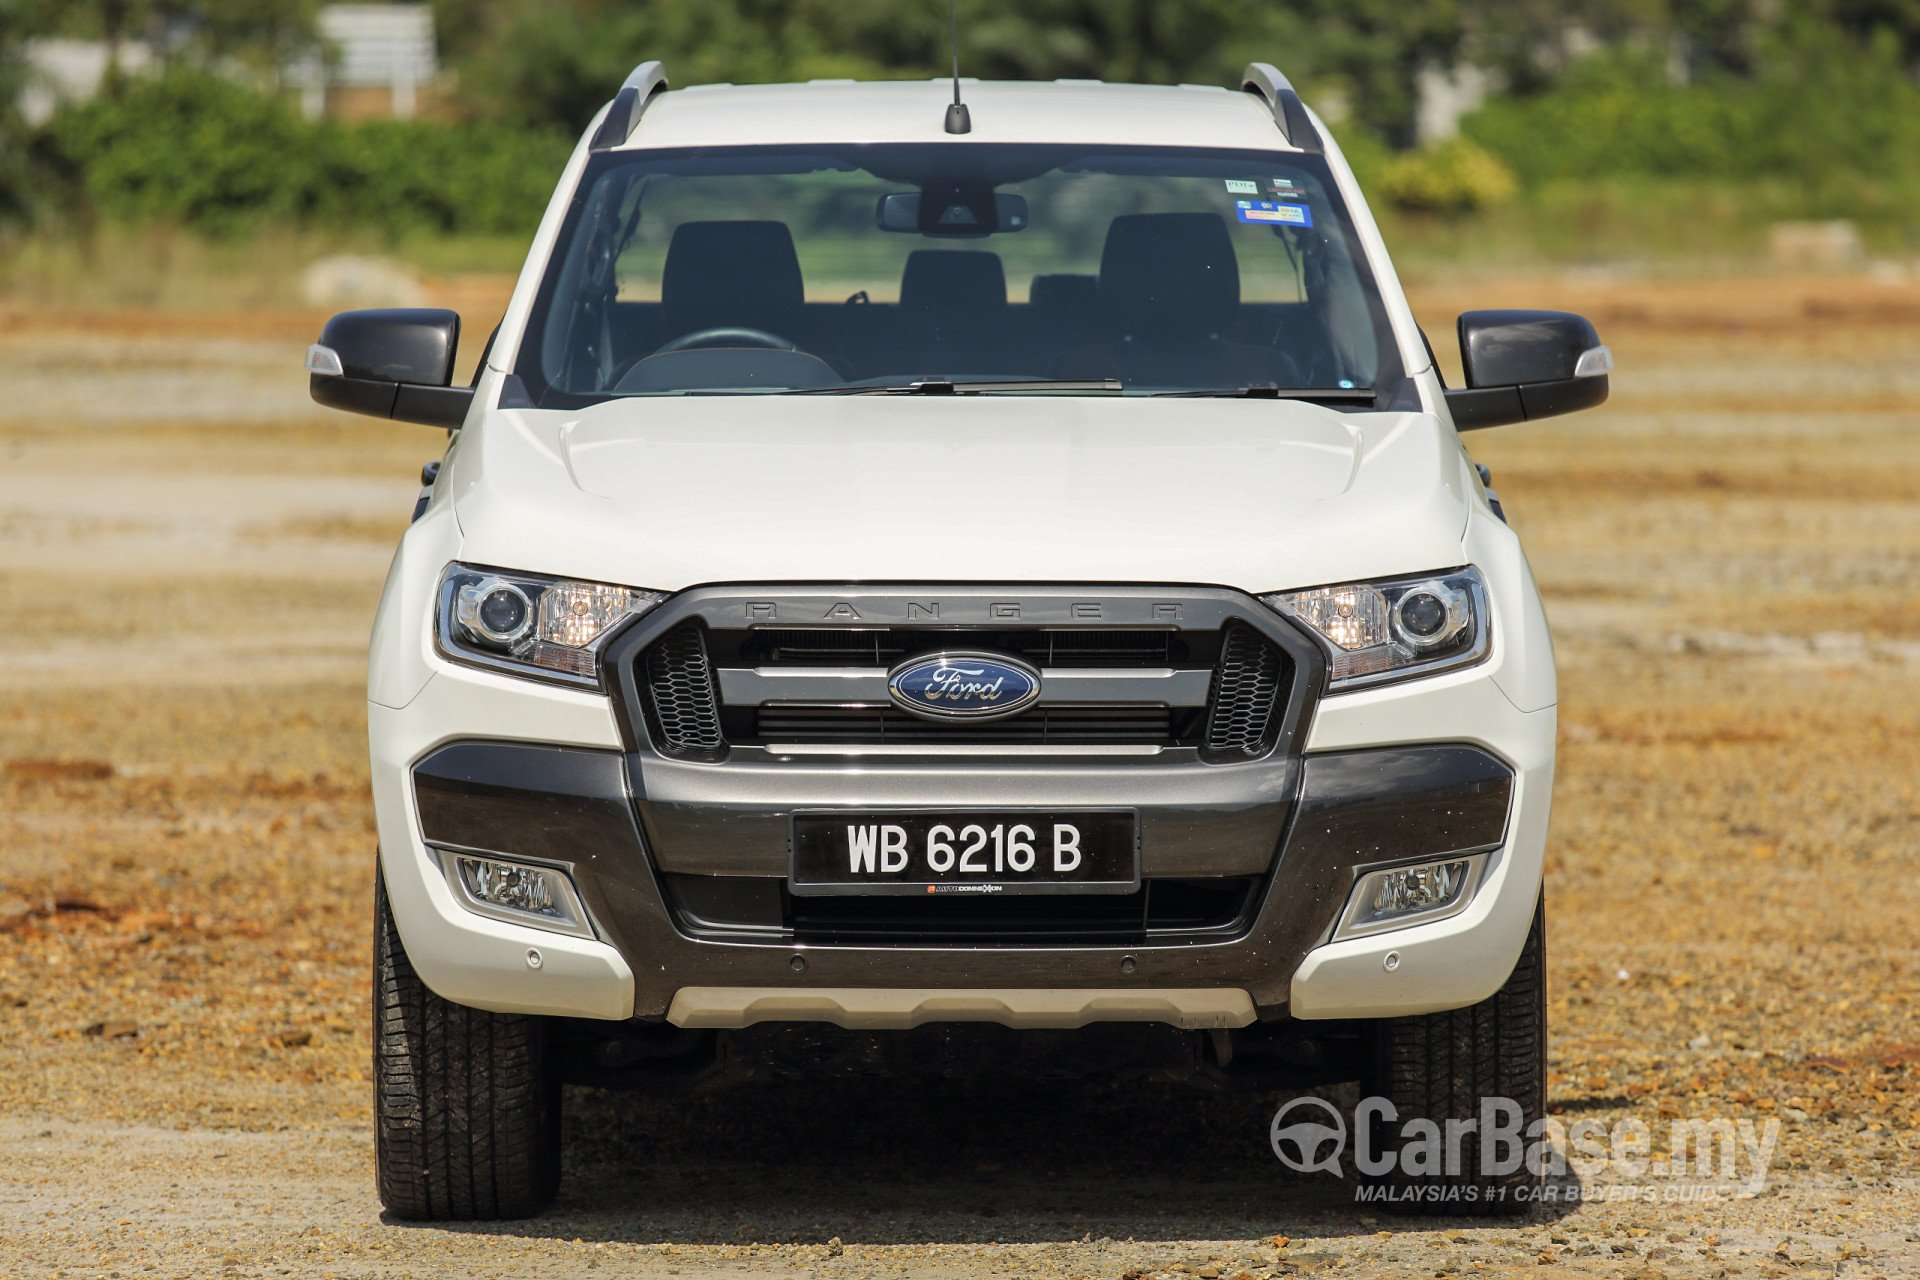 Ford Ranger T6 Facelift 2015 Exterior Image 25738 In Malaysia Reviews Specs Prices